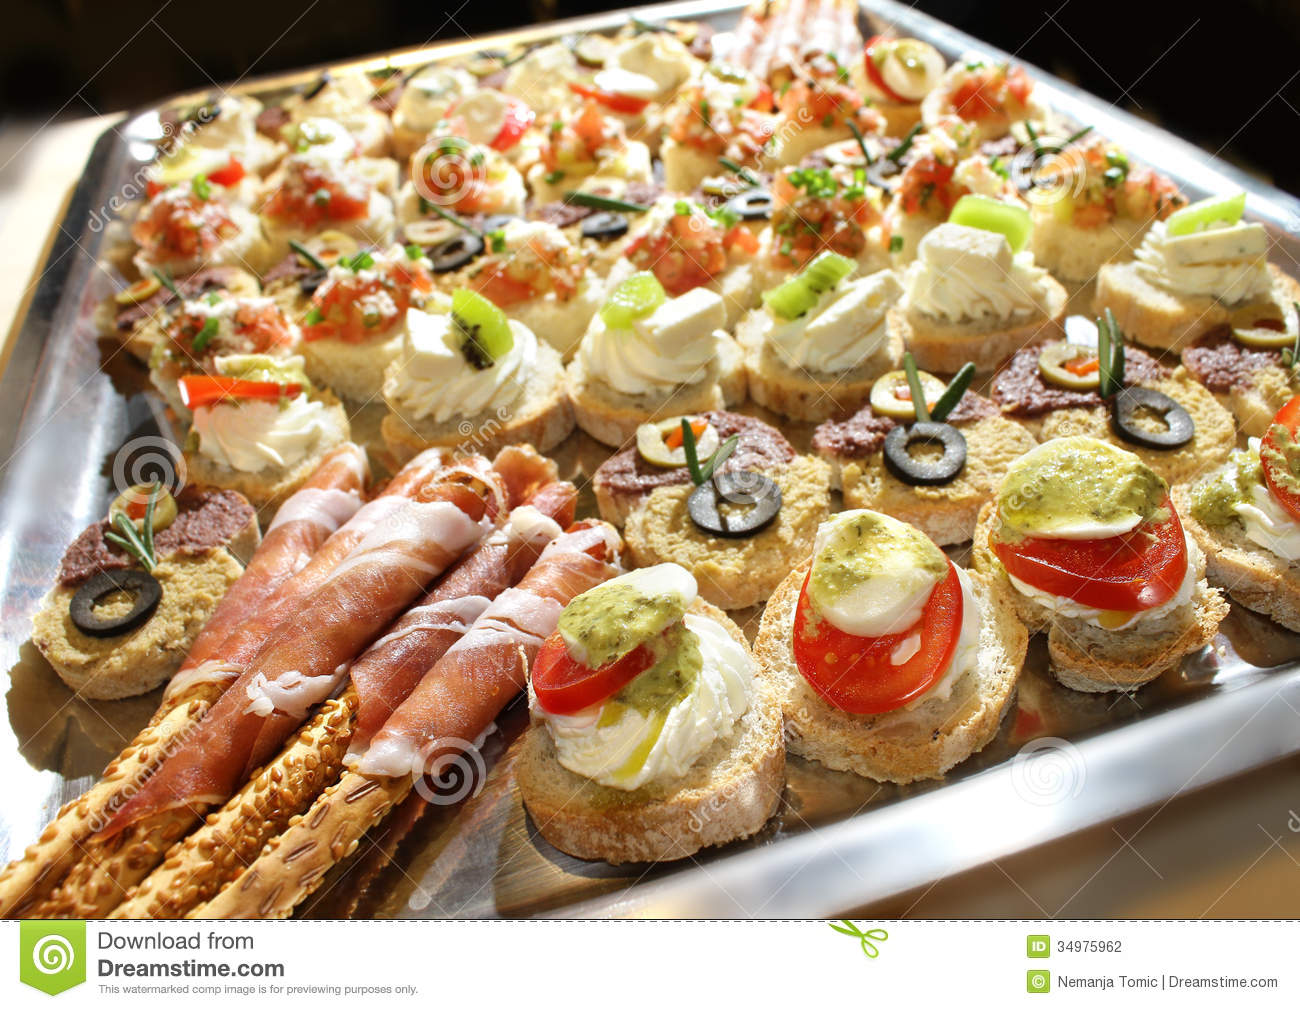 Variety of finger food on catering event. Shallow focus.